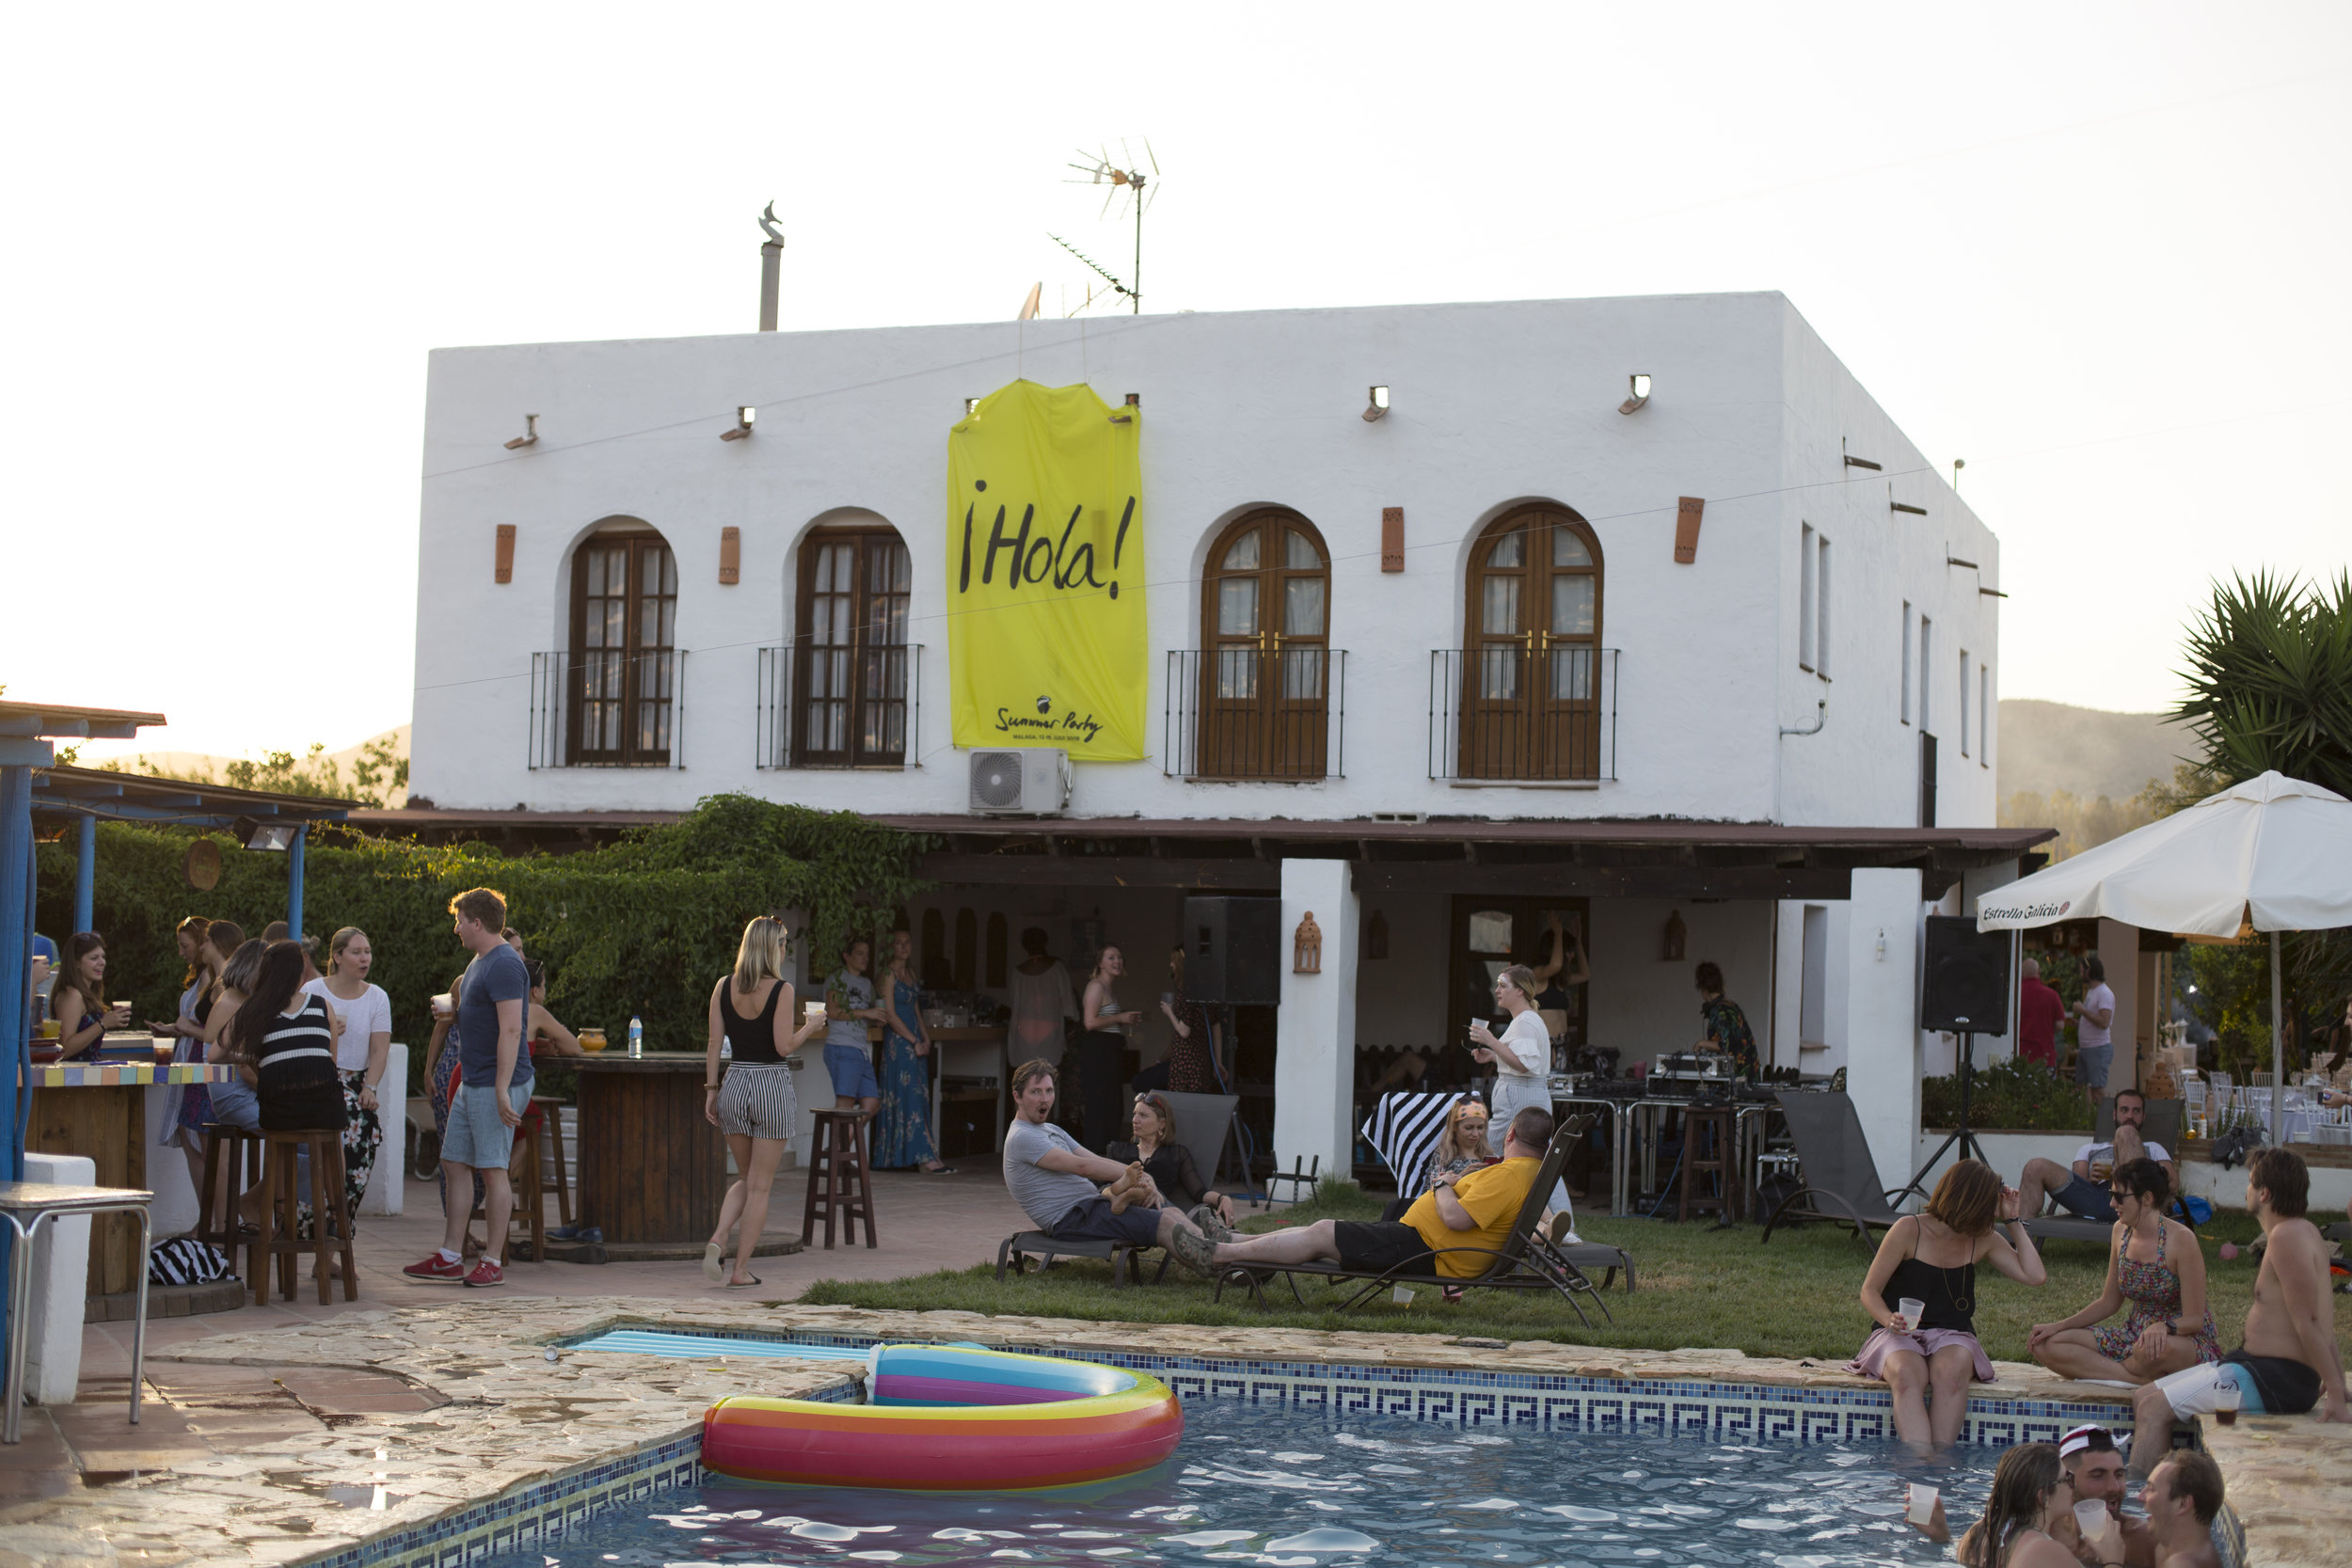 A photo outside of the hotel/villa with some people in the pool and others stood having a chat by the bar.